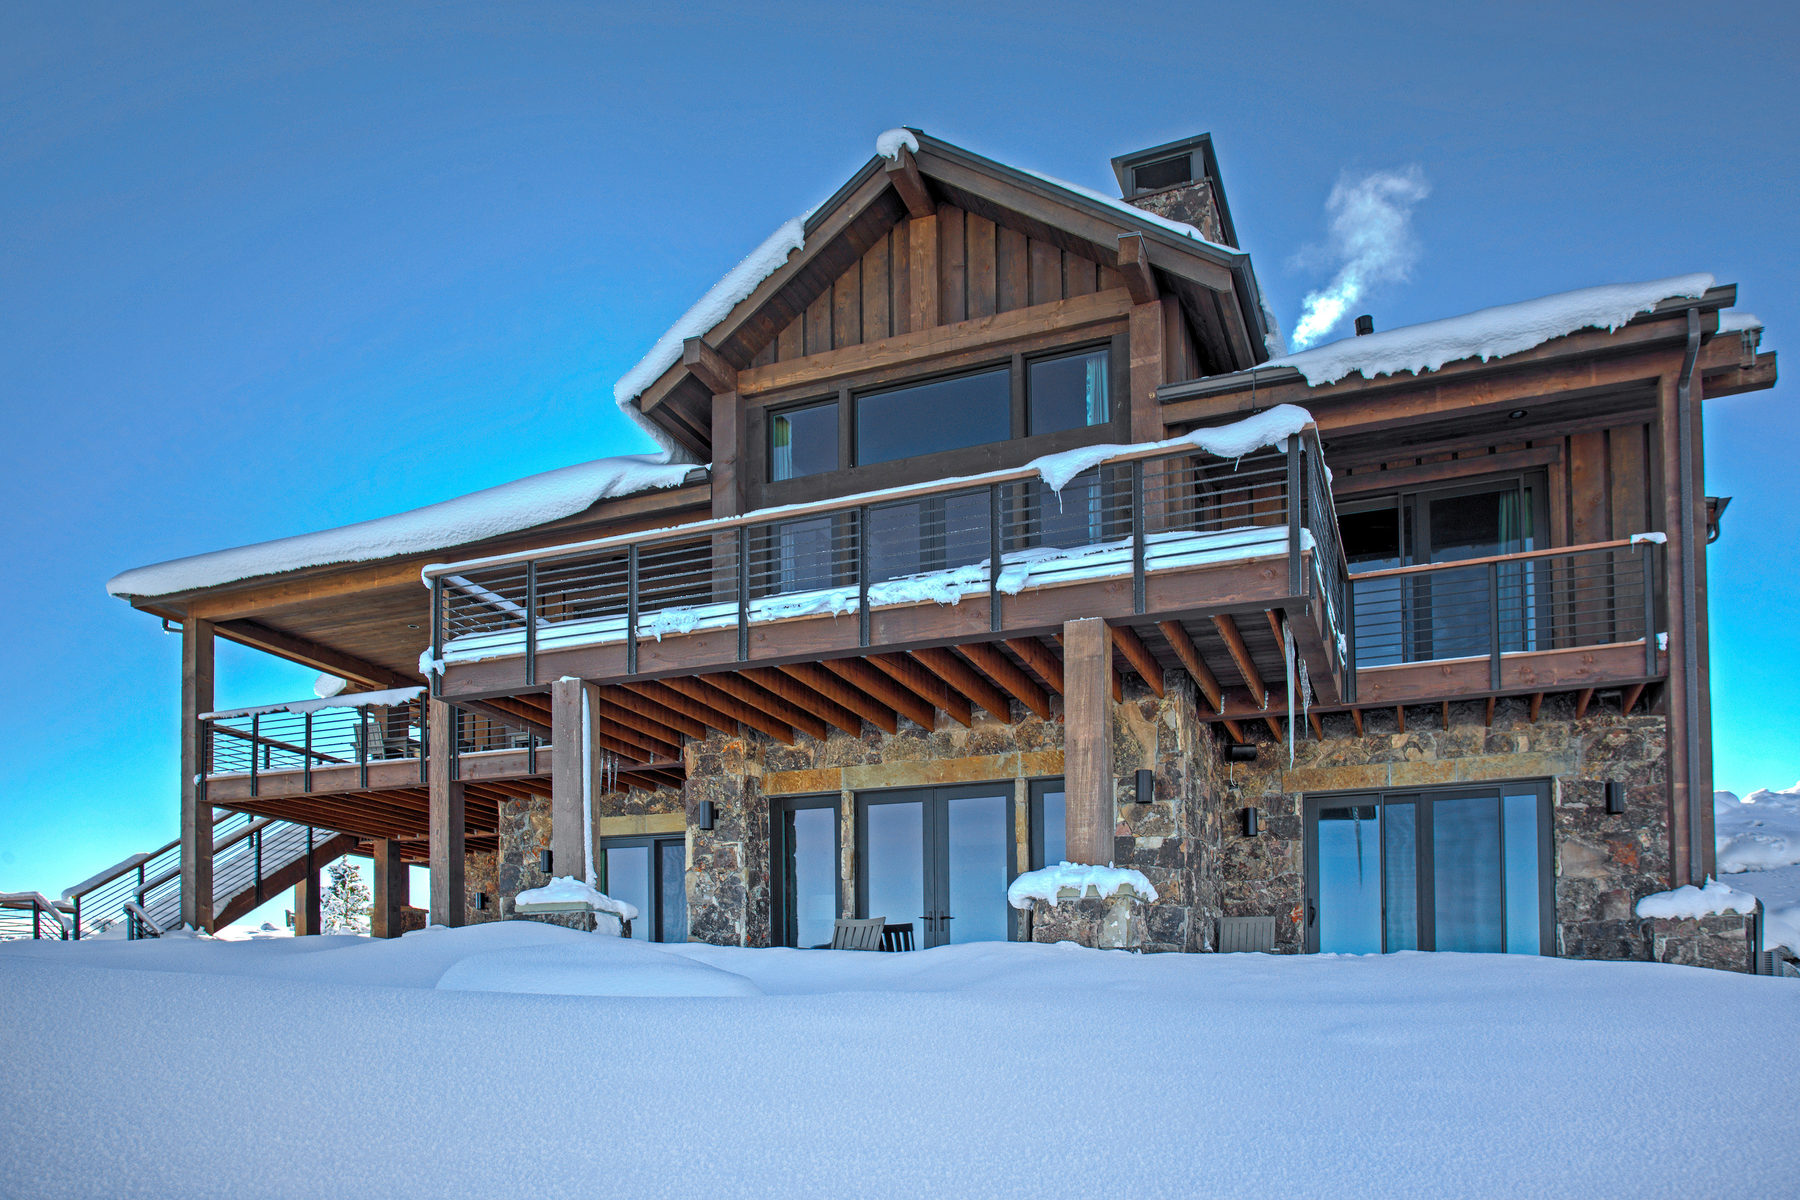 Additional photo for property listing at Juniper Cabin with Spectacular Views 7049 N Rees Jones Way #171 希伯城, 犹他州 84032 美国